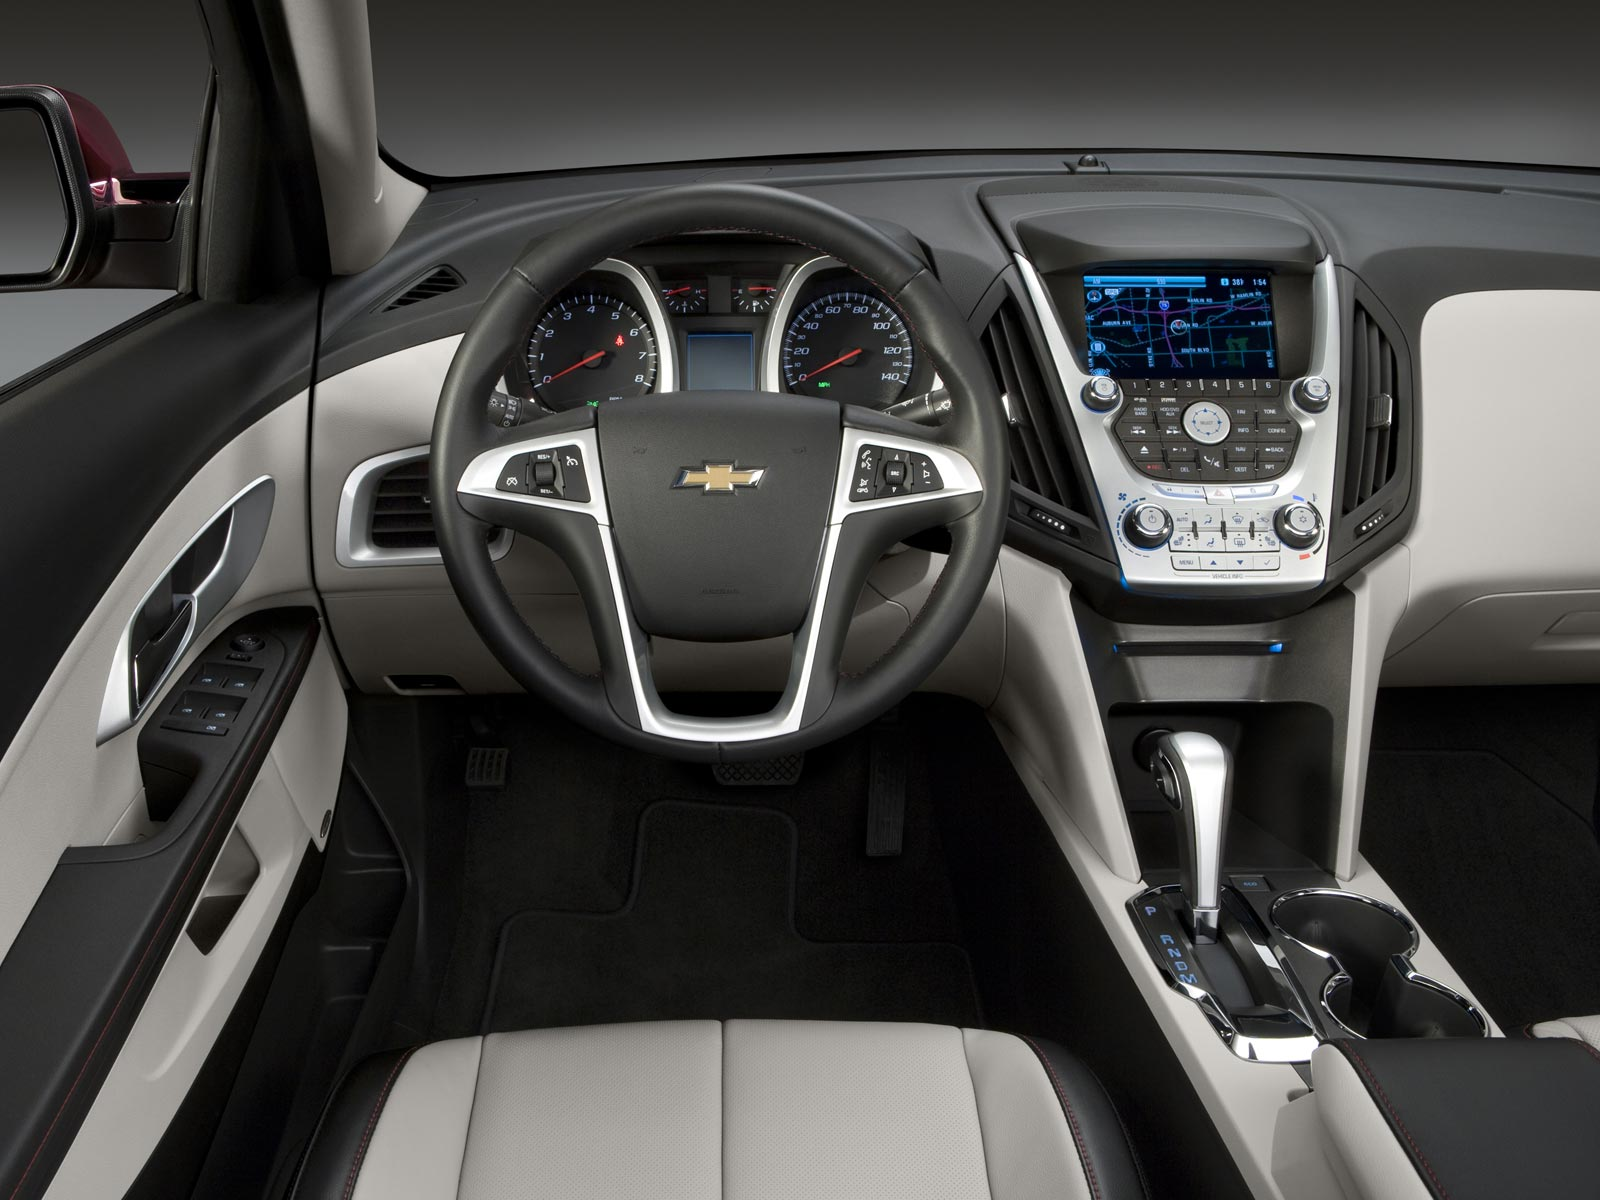 2019 Chevrolet Equinox photo - 5